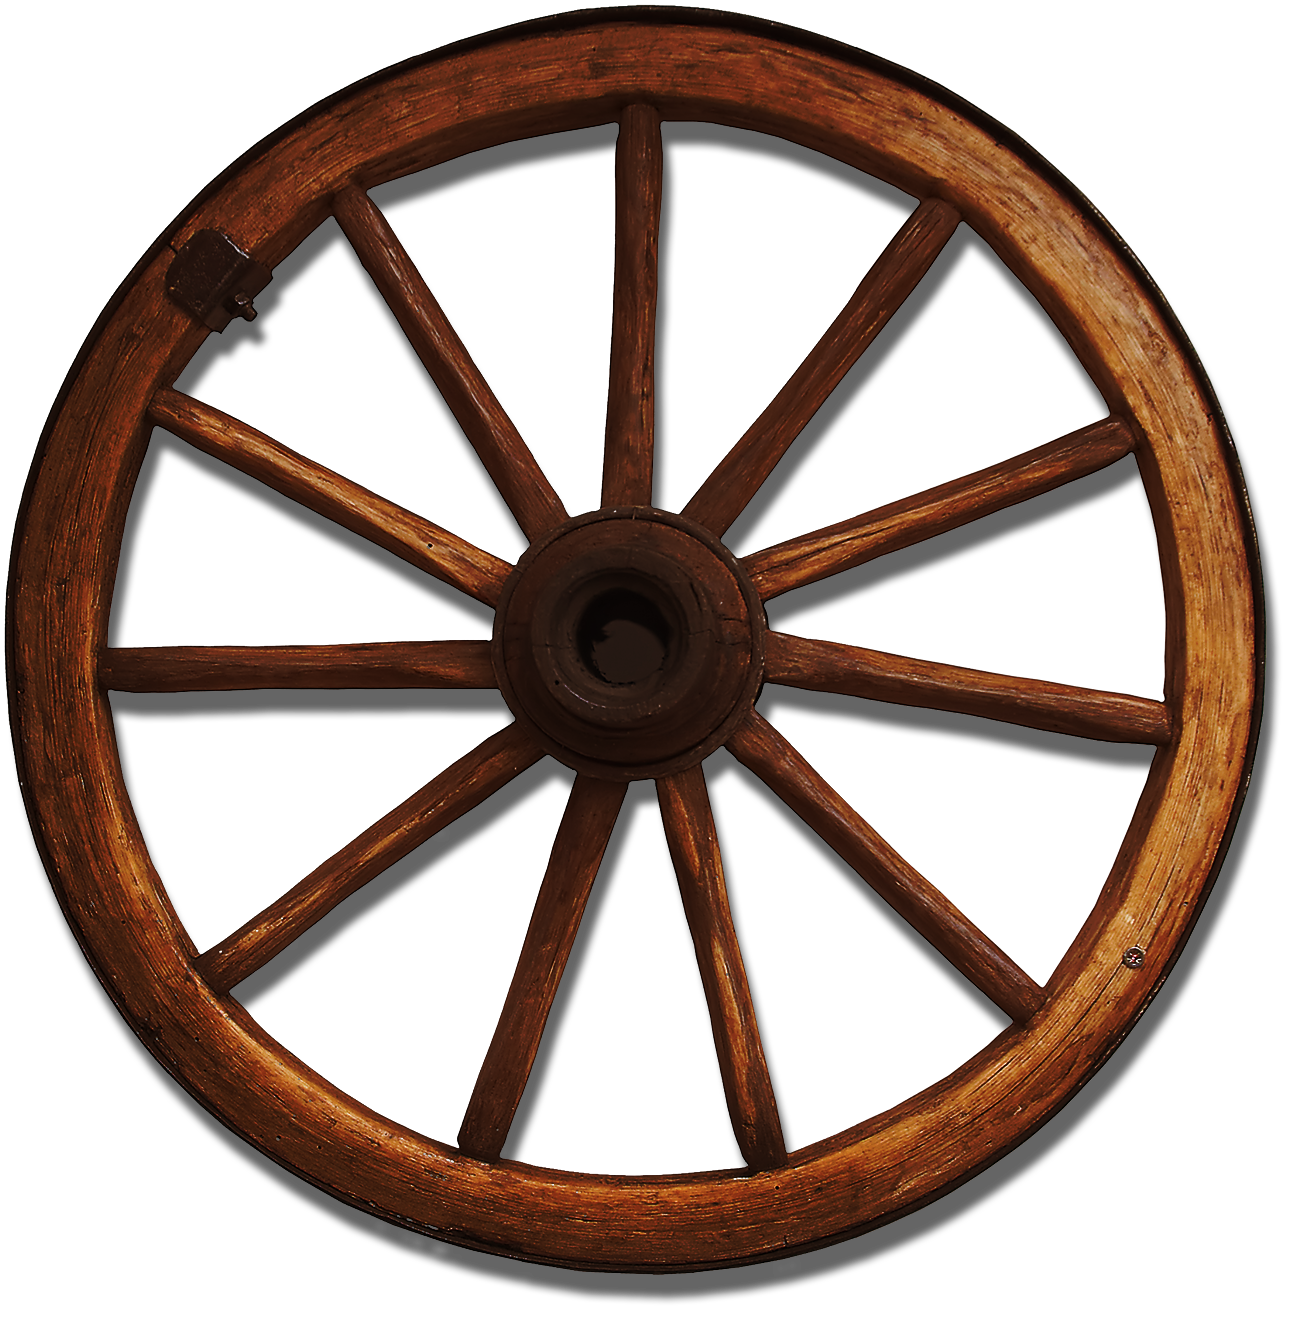 Wagon wheel download free clipart with a transparent.